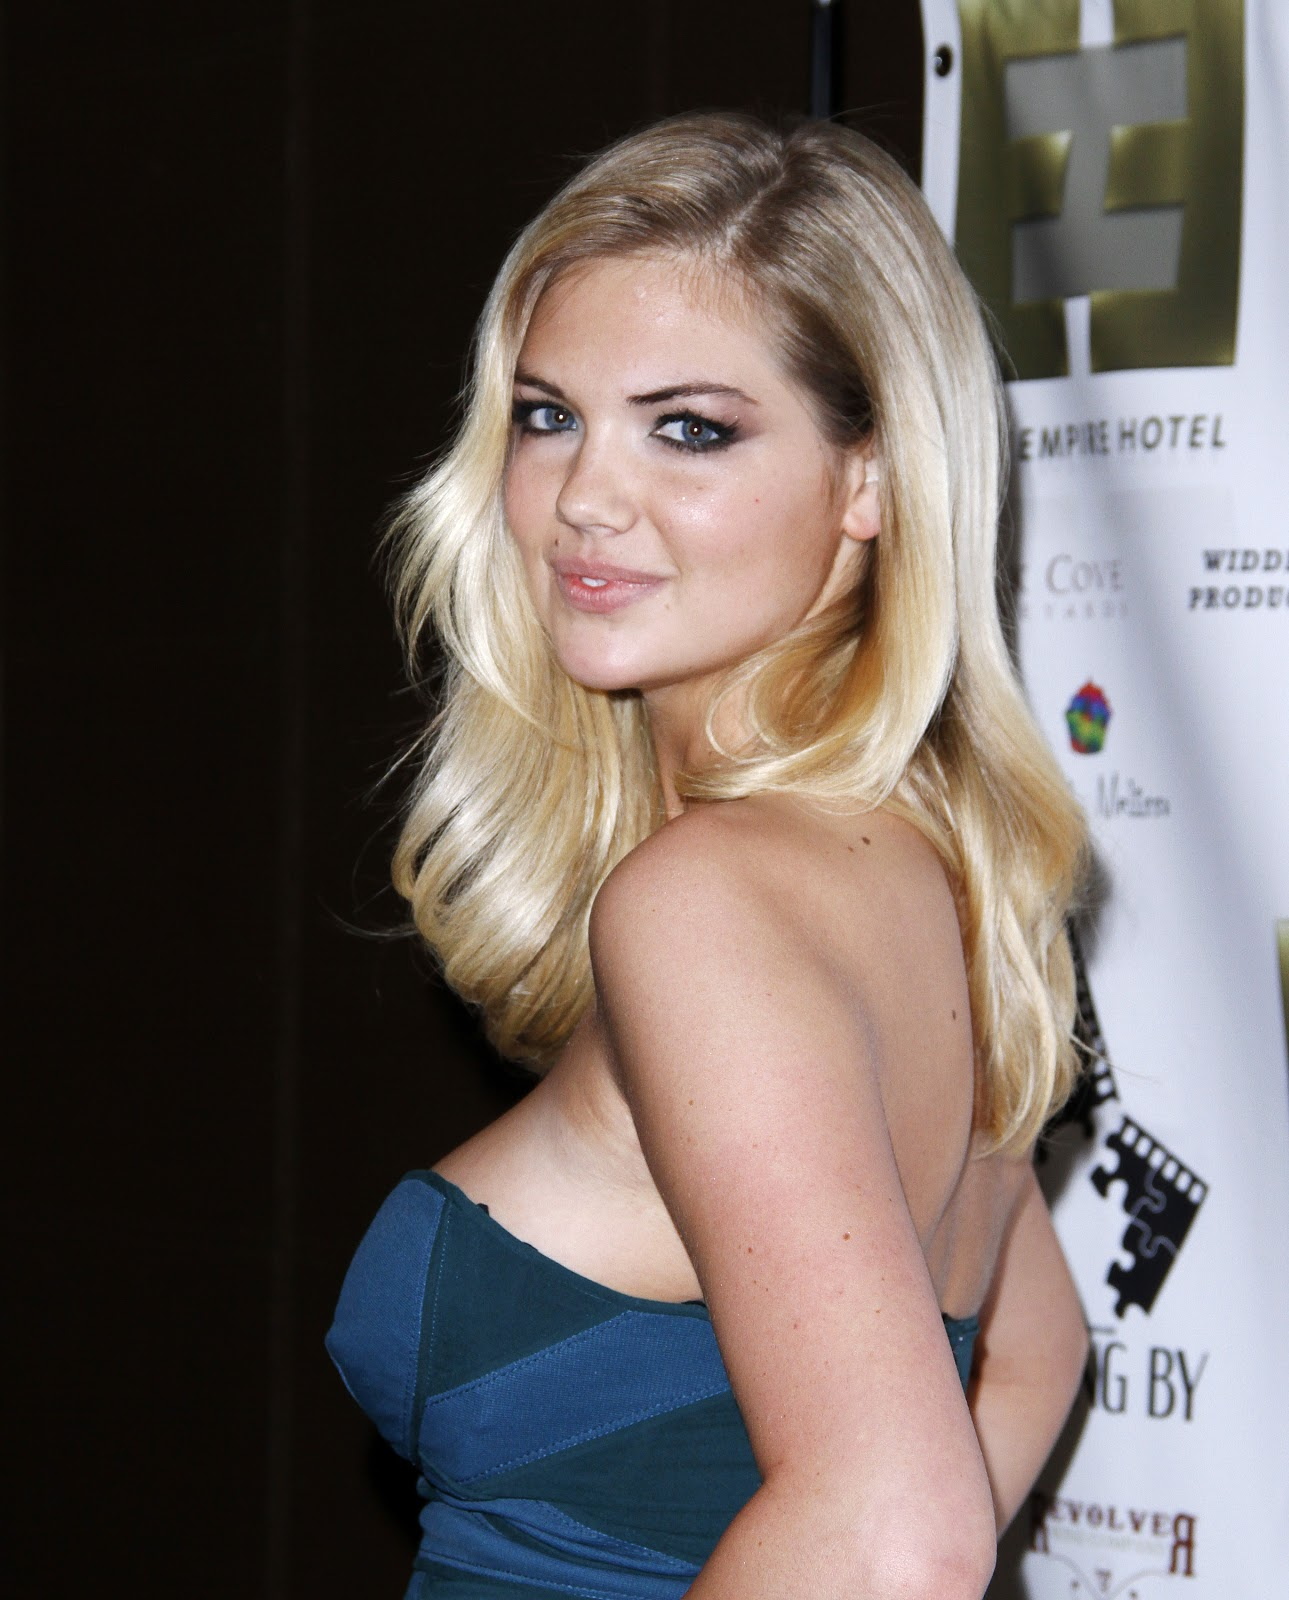 http://1.bp.blogspot.com/-BotDF1imzZs/UHlbpIwuG1I/AAAAAAAAS4w/xSKn-nD_0i8/s1600/Kate+Upton+attends++Casting+By+Premiere+After+Party++at+Empire+Hotel+on+October+12th+2012-08.jpg